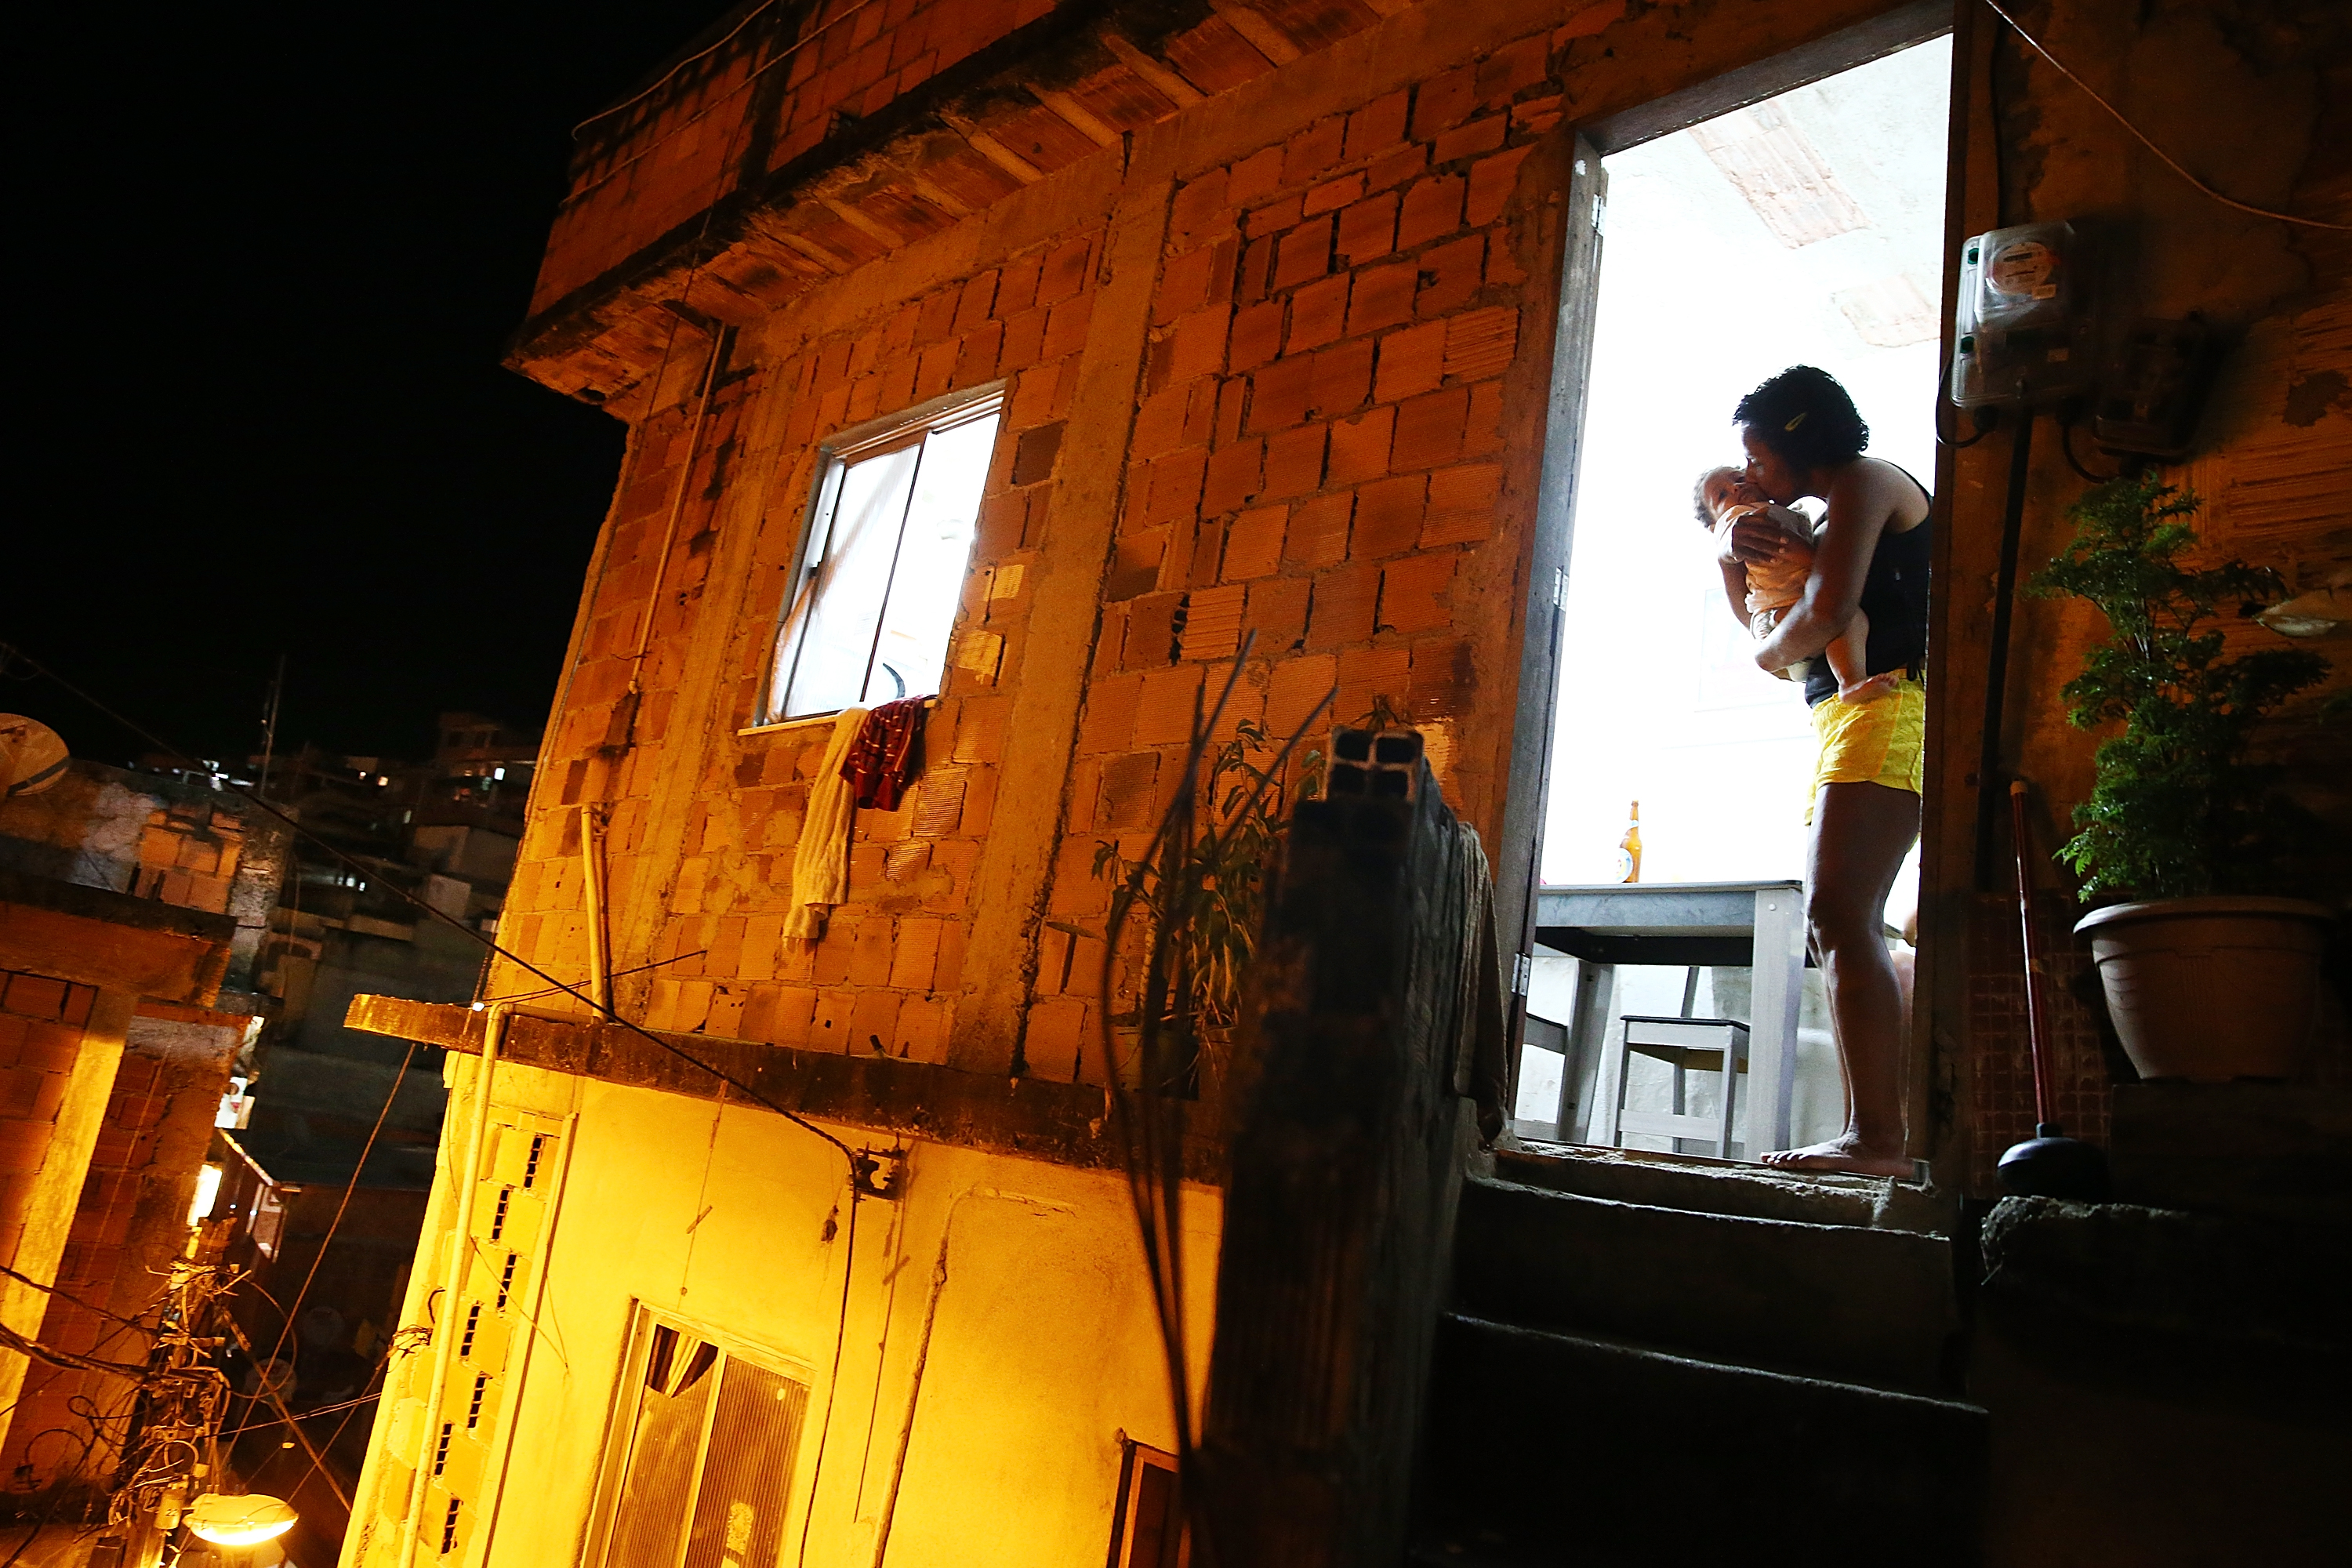 A woman kisses a baby in the Cantagalo shantytown community on March 28, 2014 in Rio de Janeiro.